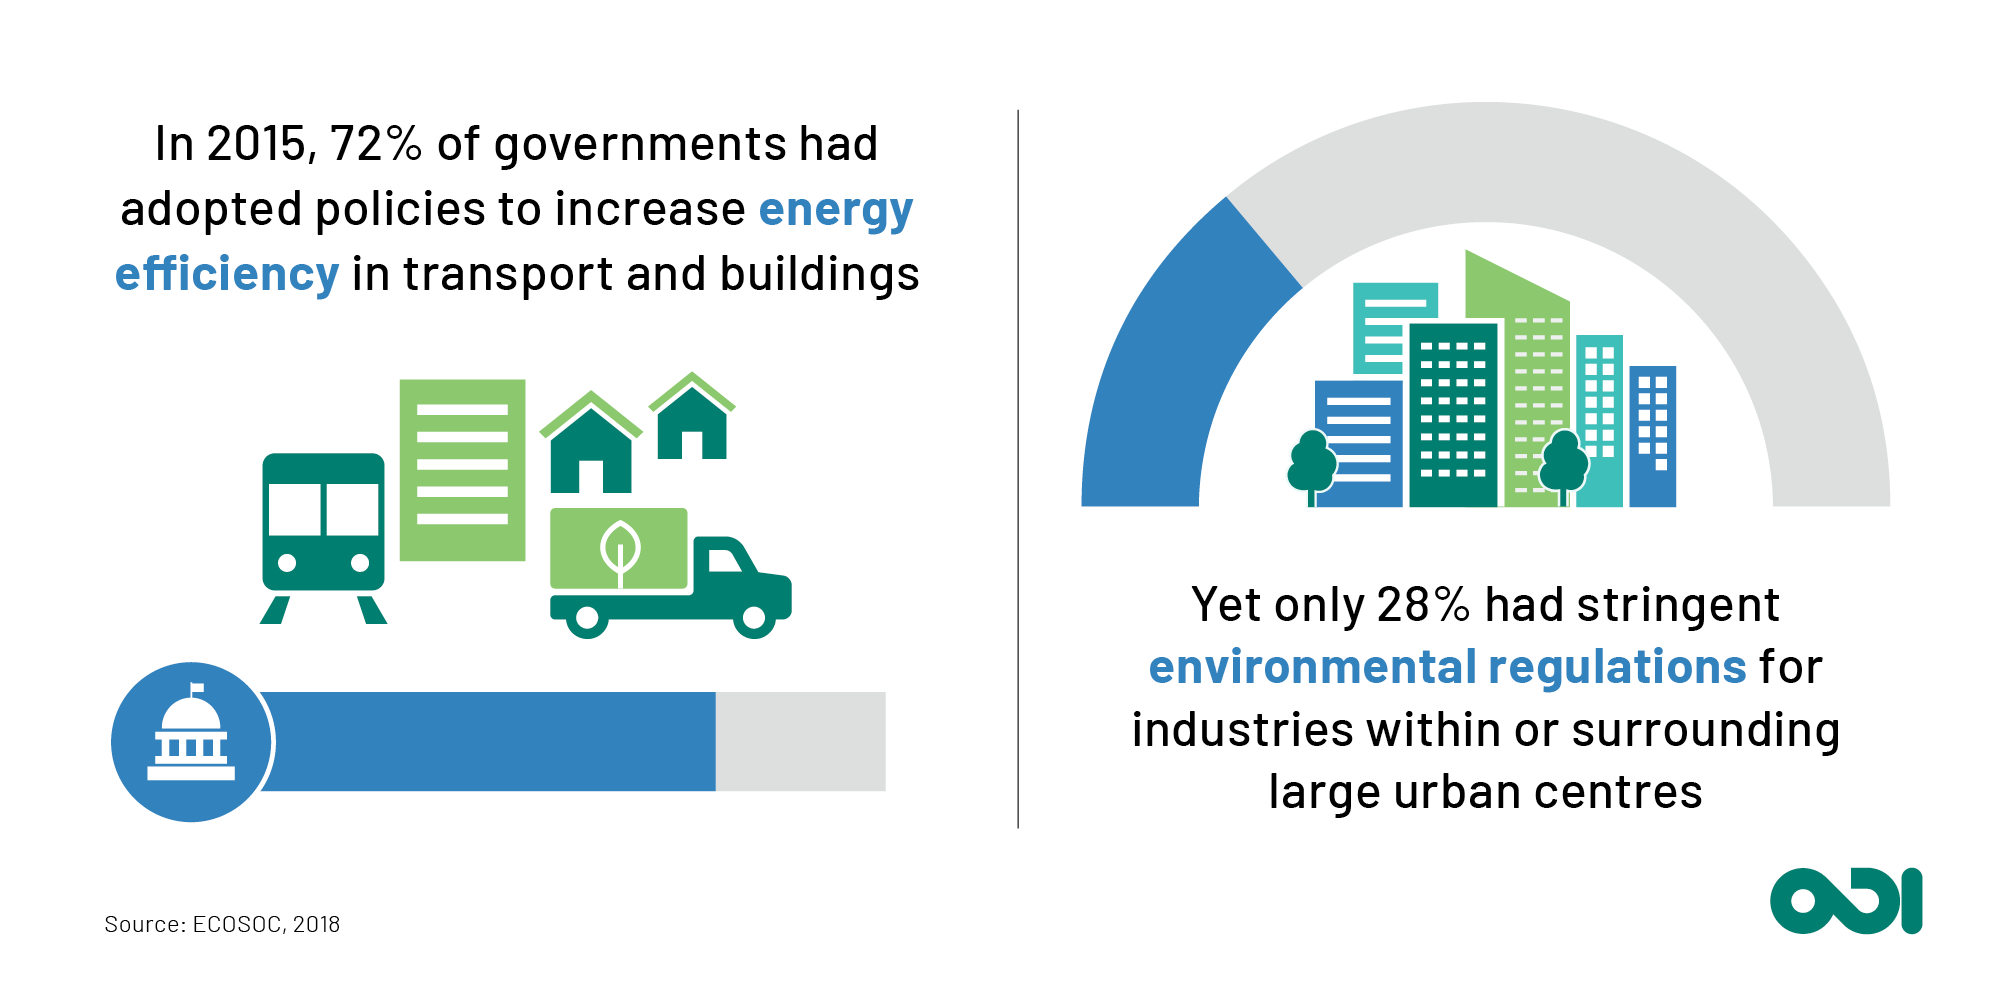 In 2015, 72% of governments had adopted energy efficiency policies for transport and buildings, yet only 28% had stringent environmental regulations for industries within or surrounding large urban areas